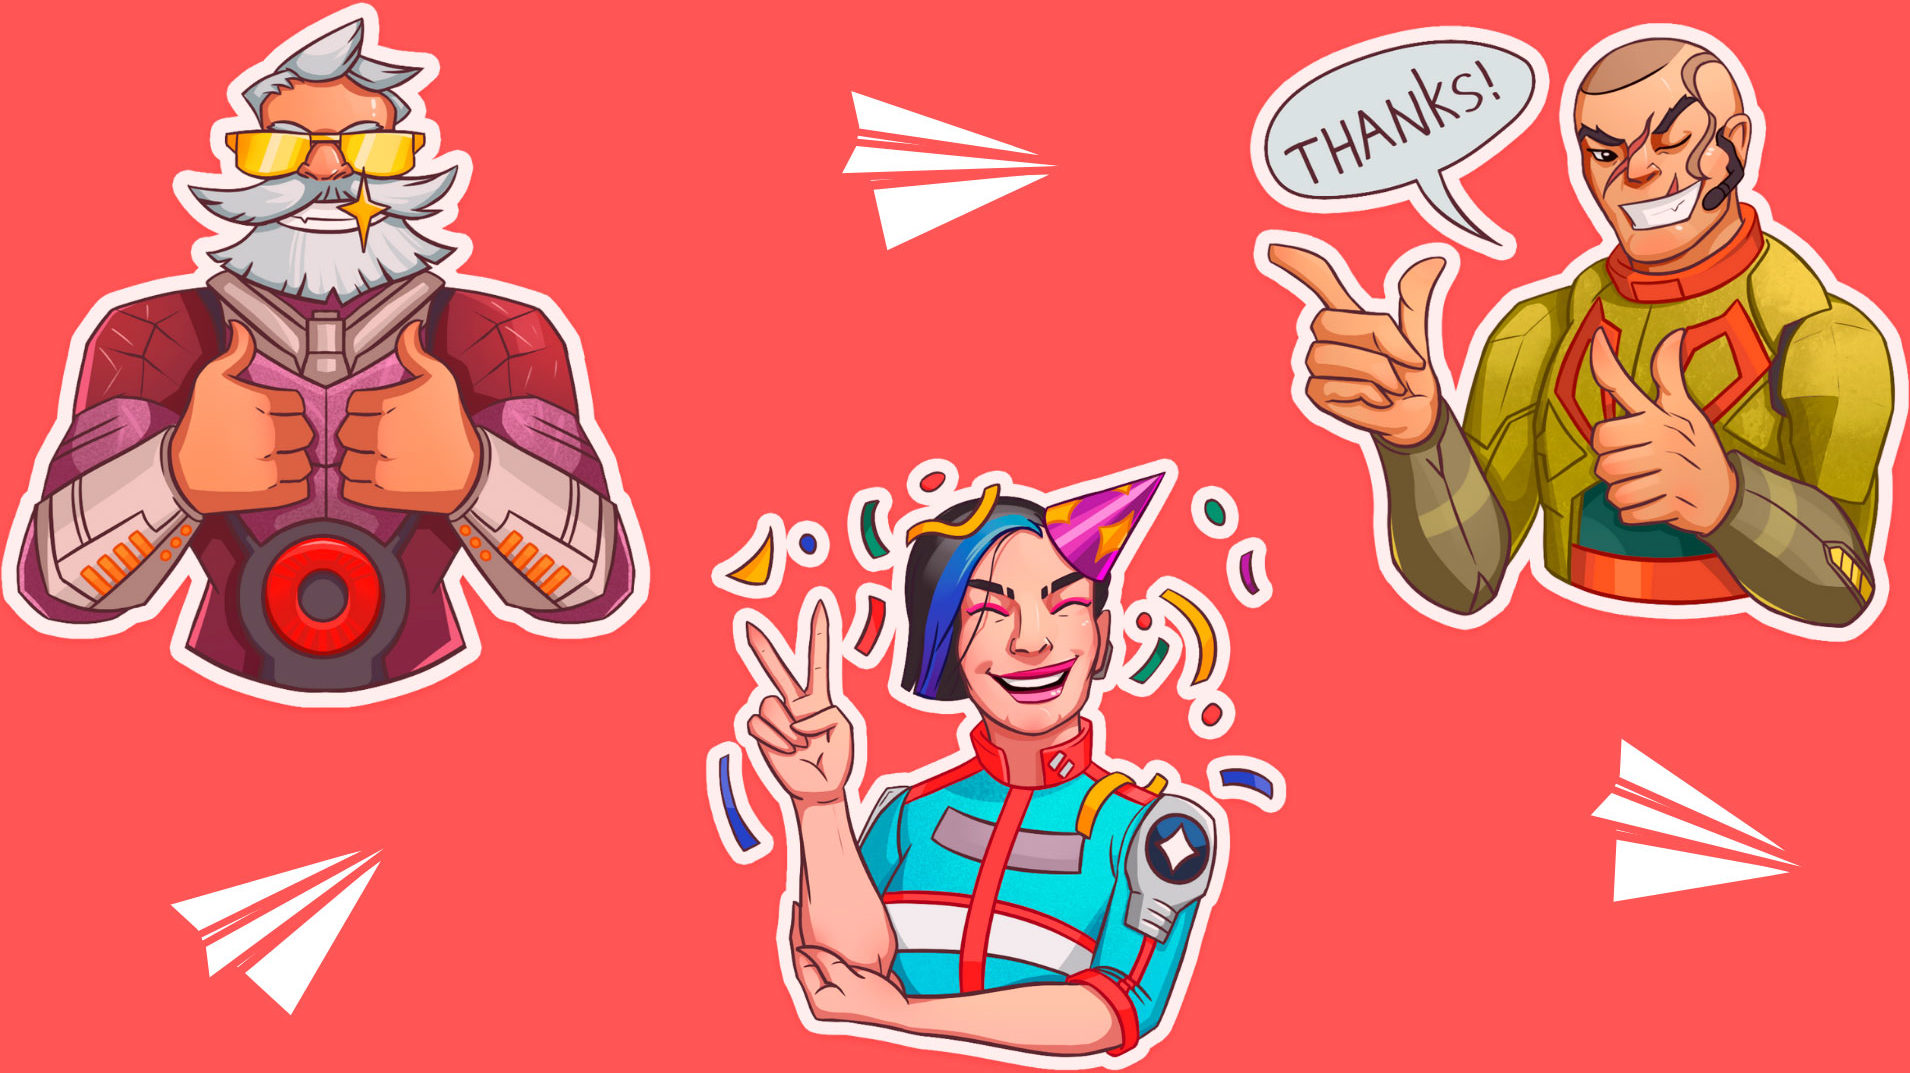 Telegram v5.9 Brings New Animated Stickers With Smooth Animations and Small File Sizes